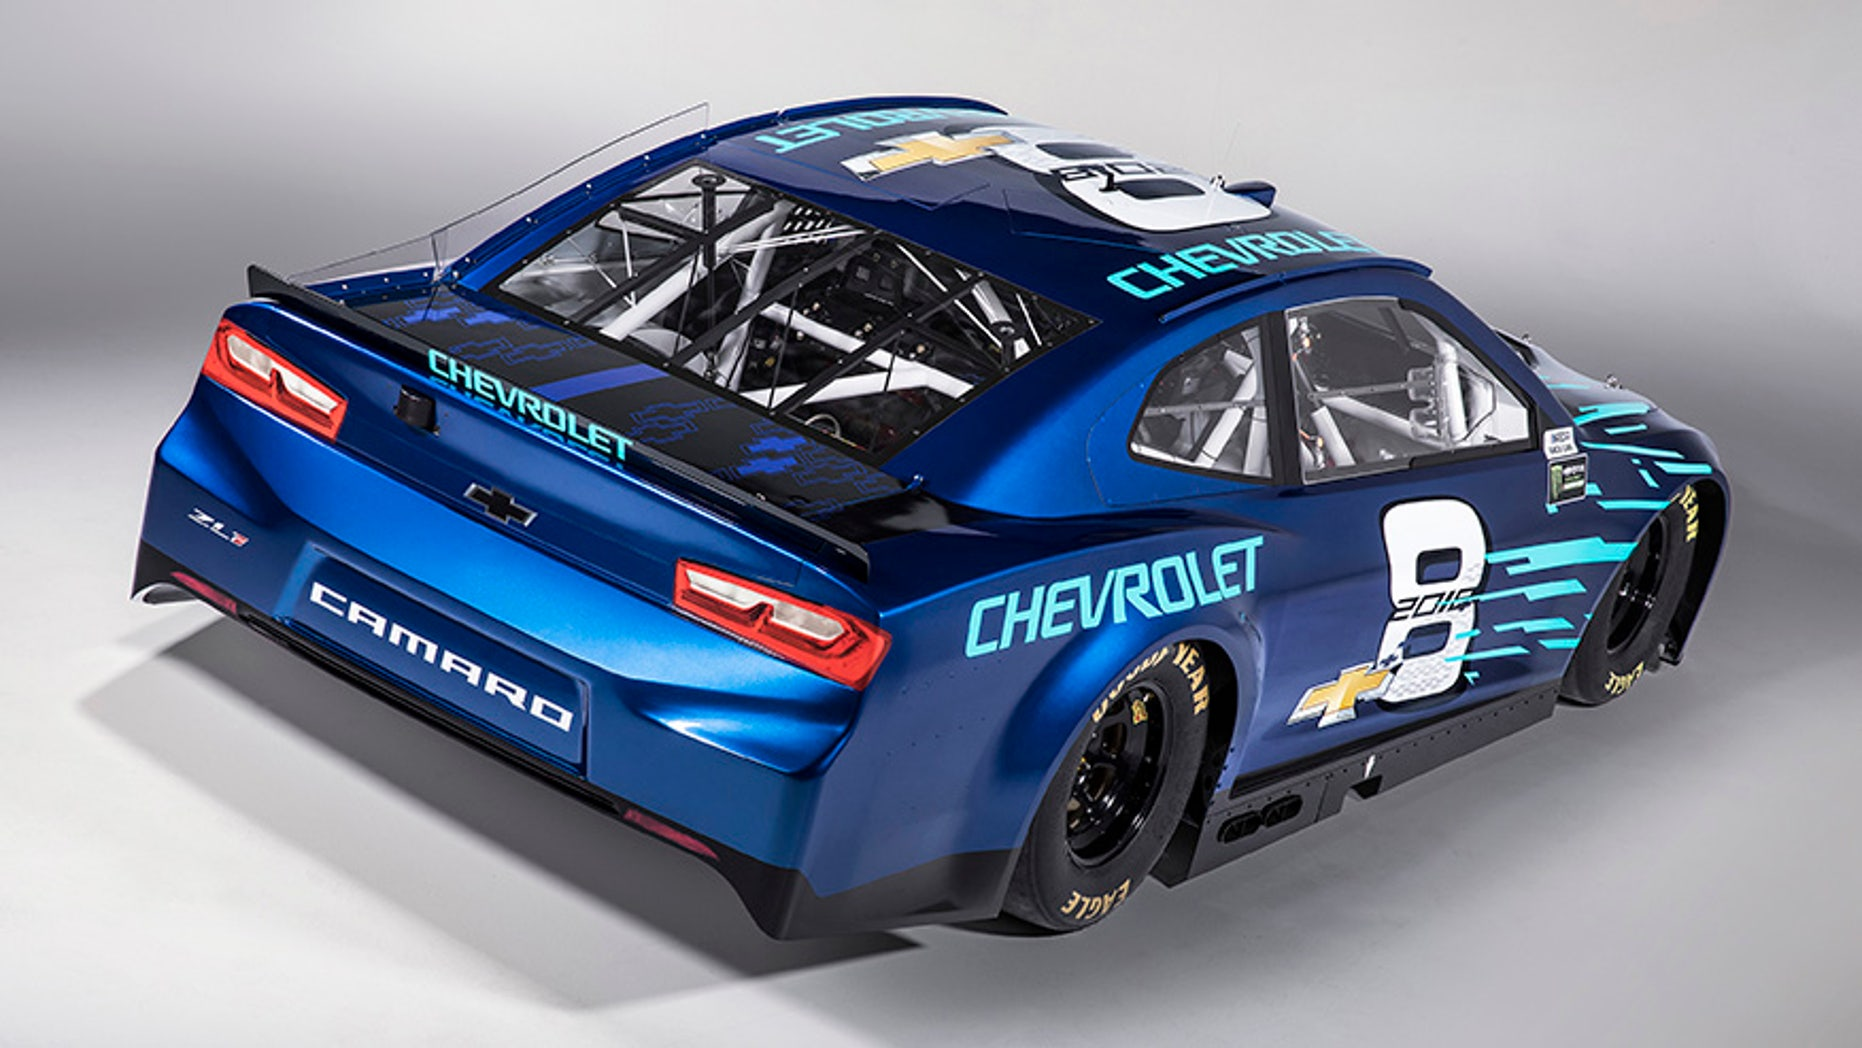 The Camaro Zl1 Is New Chevrolet Race Car Of Monster Energy Nascar Cup Series